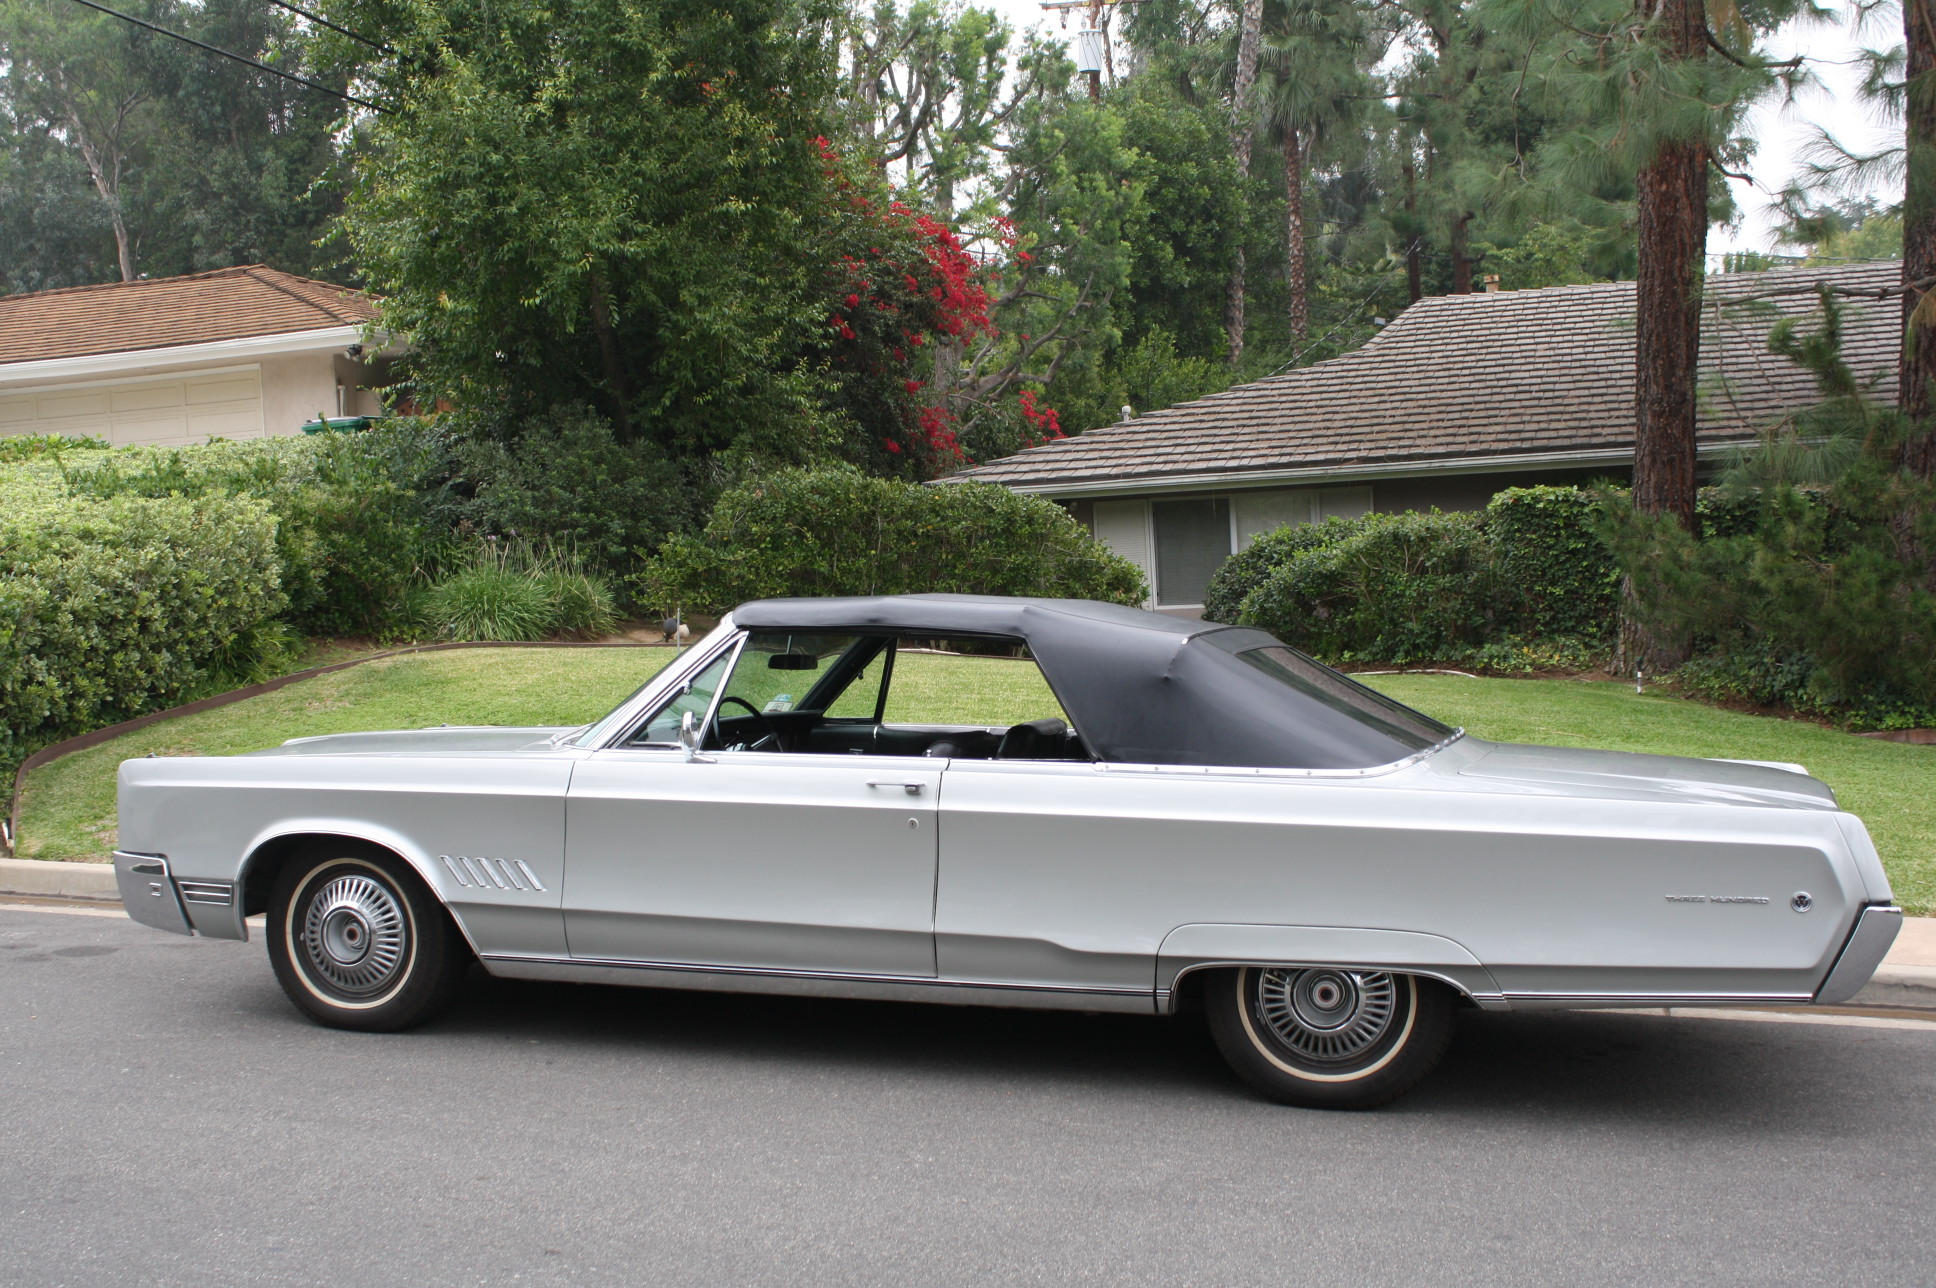 1968 Chrysler 300 Convertible The Vault Classic Cars